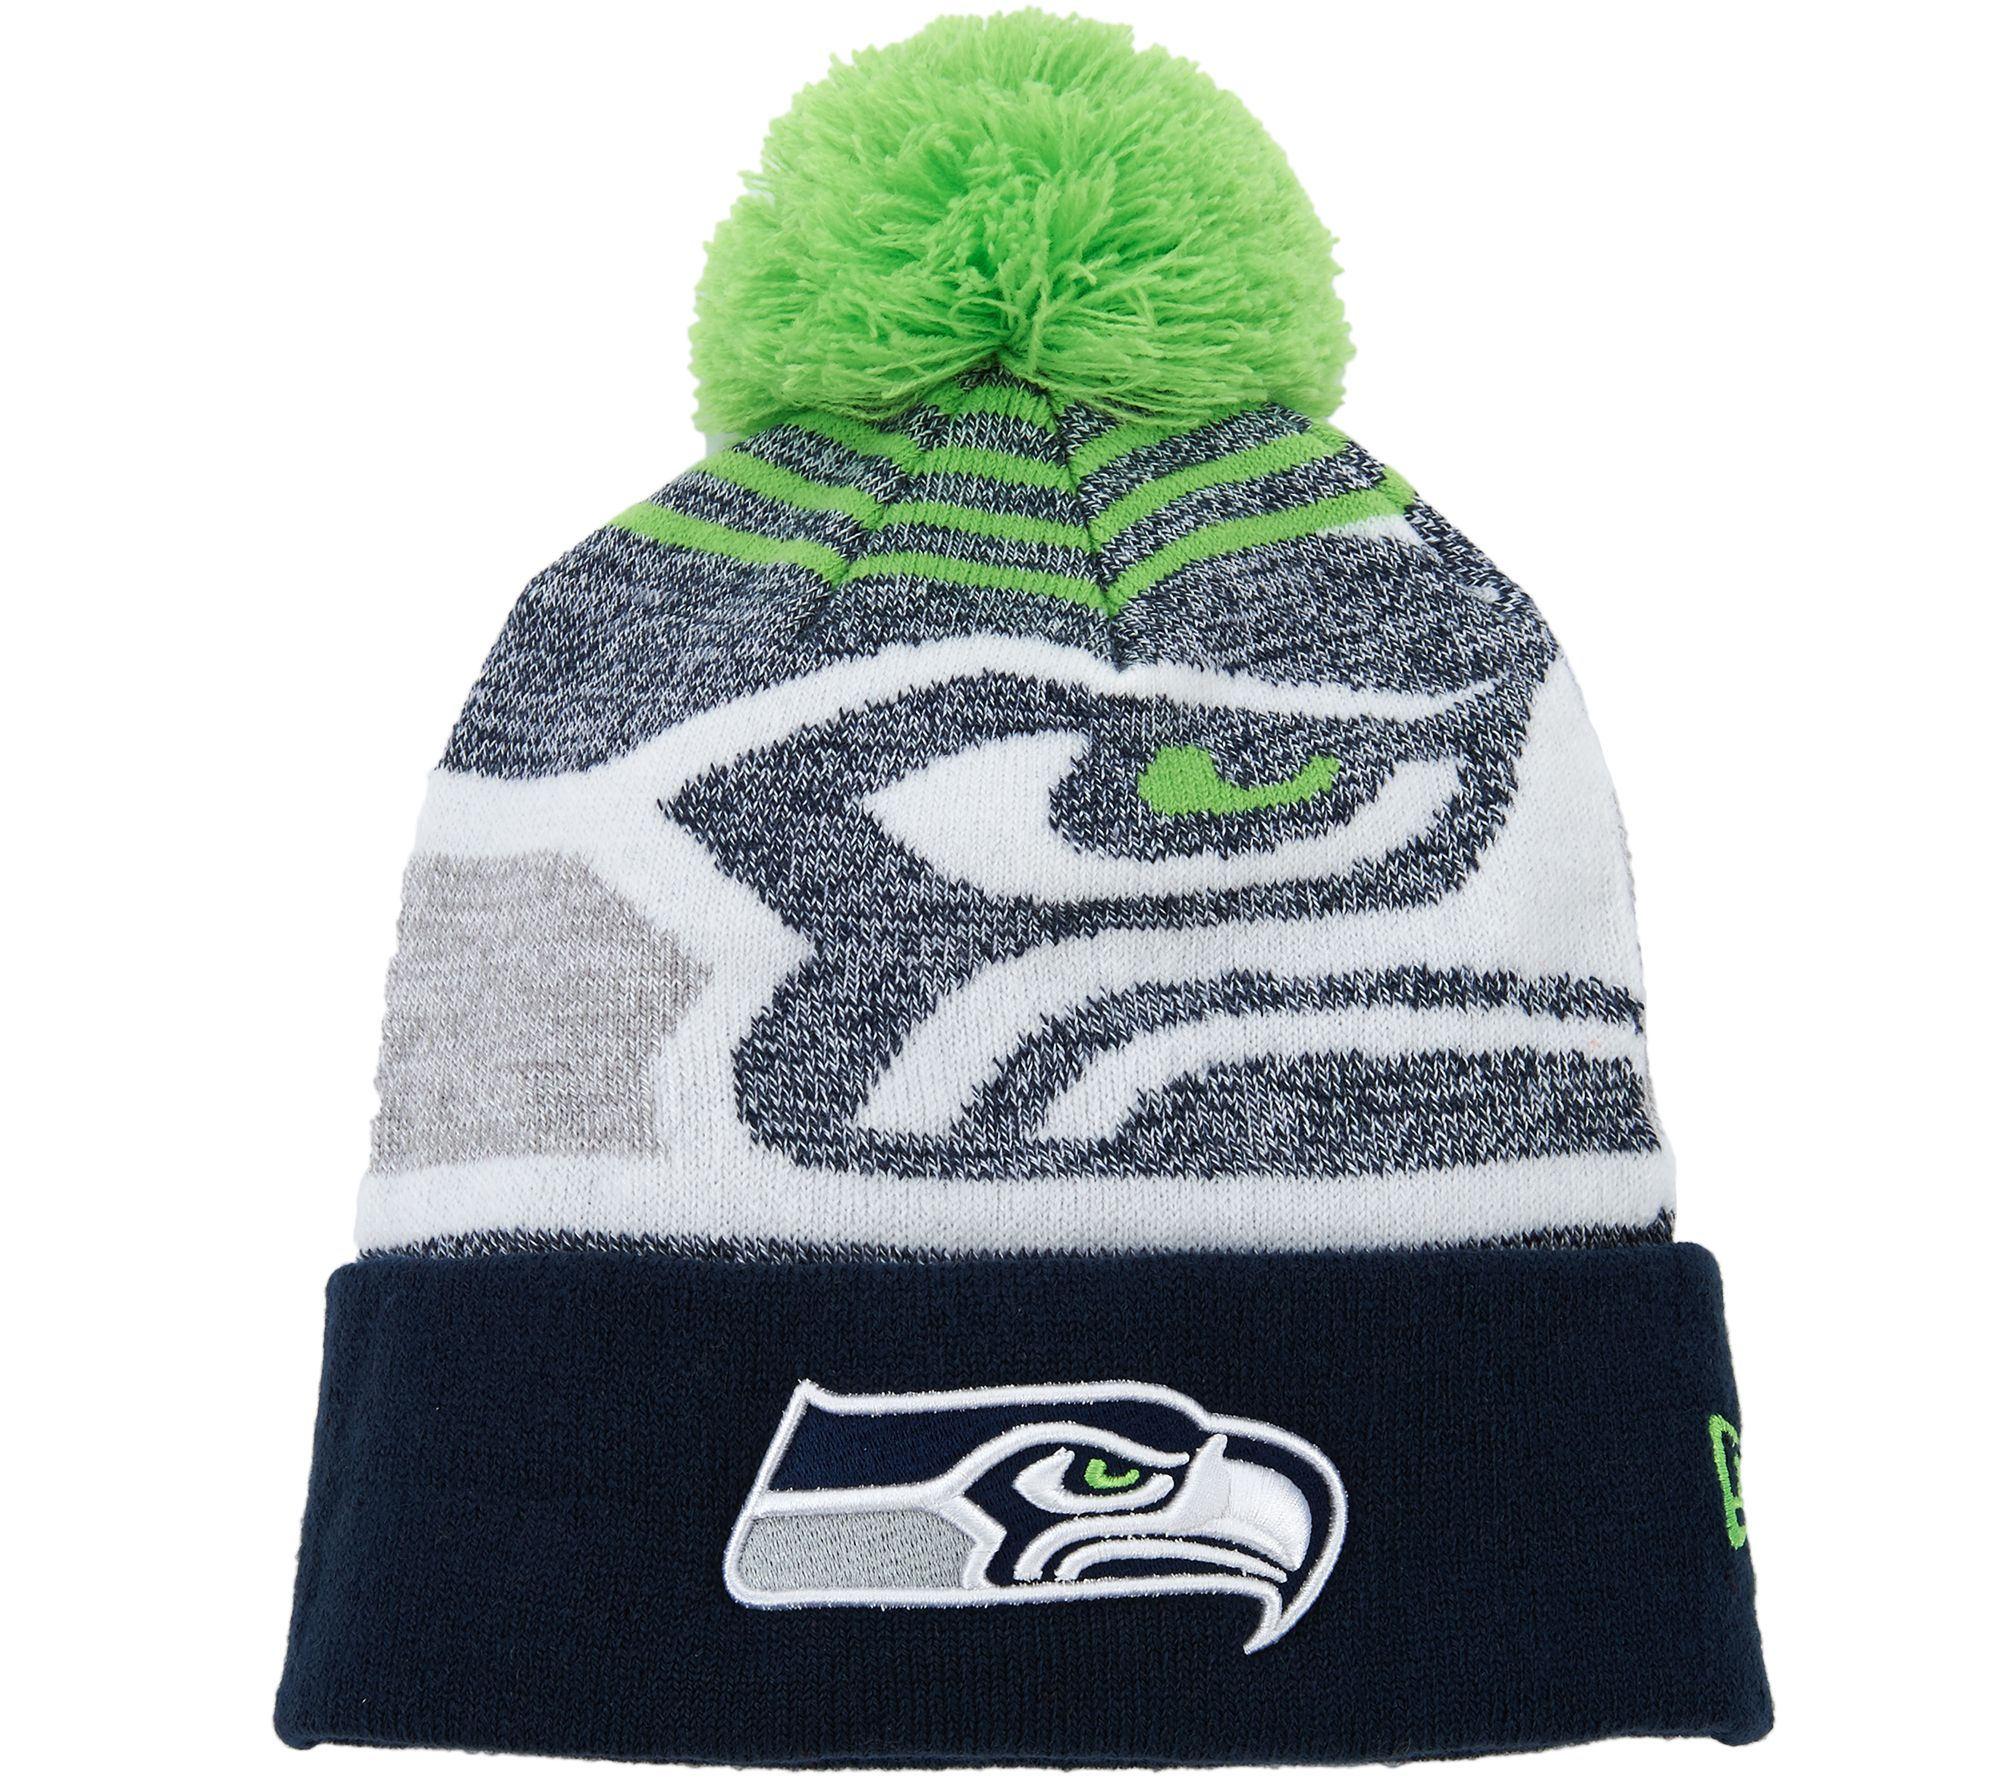 3b386ee1e88 NFL Cuff Knit Hat with Pom by New Era - Page 1 — QVC.com